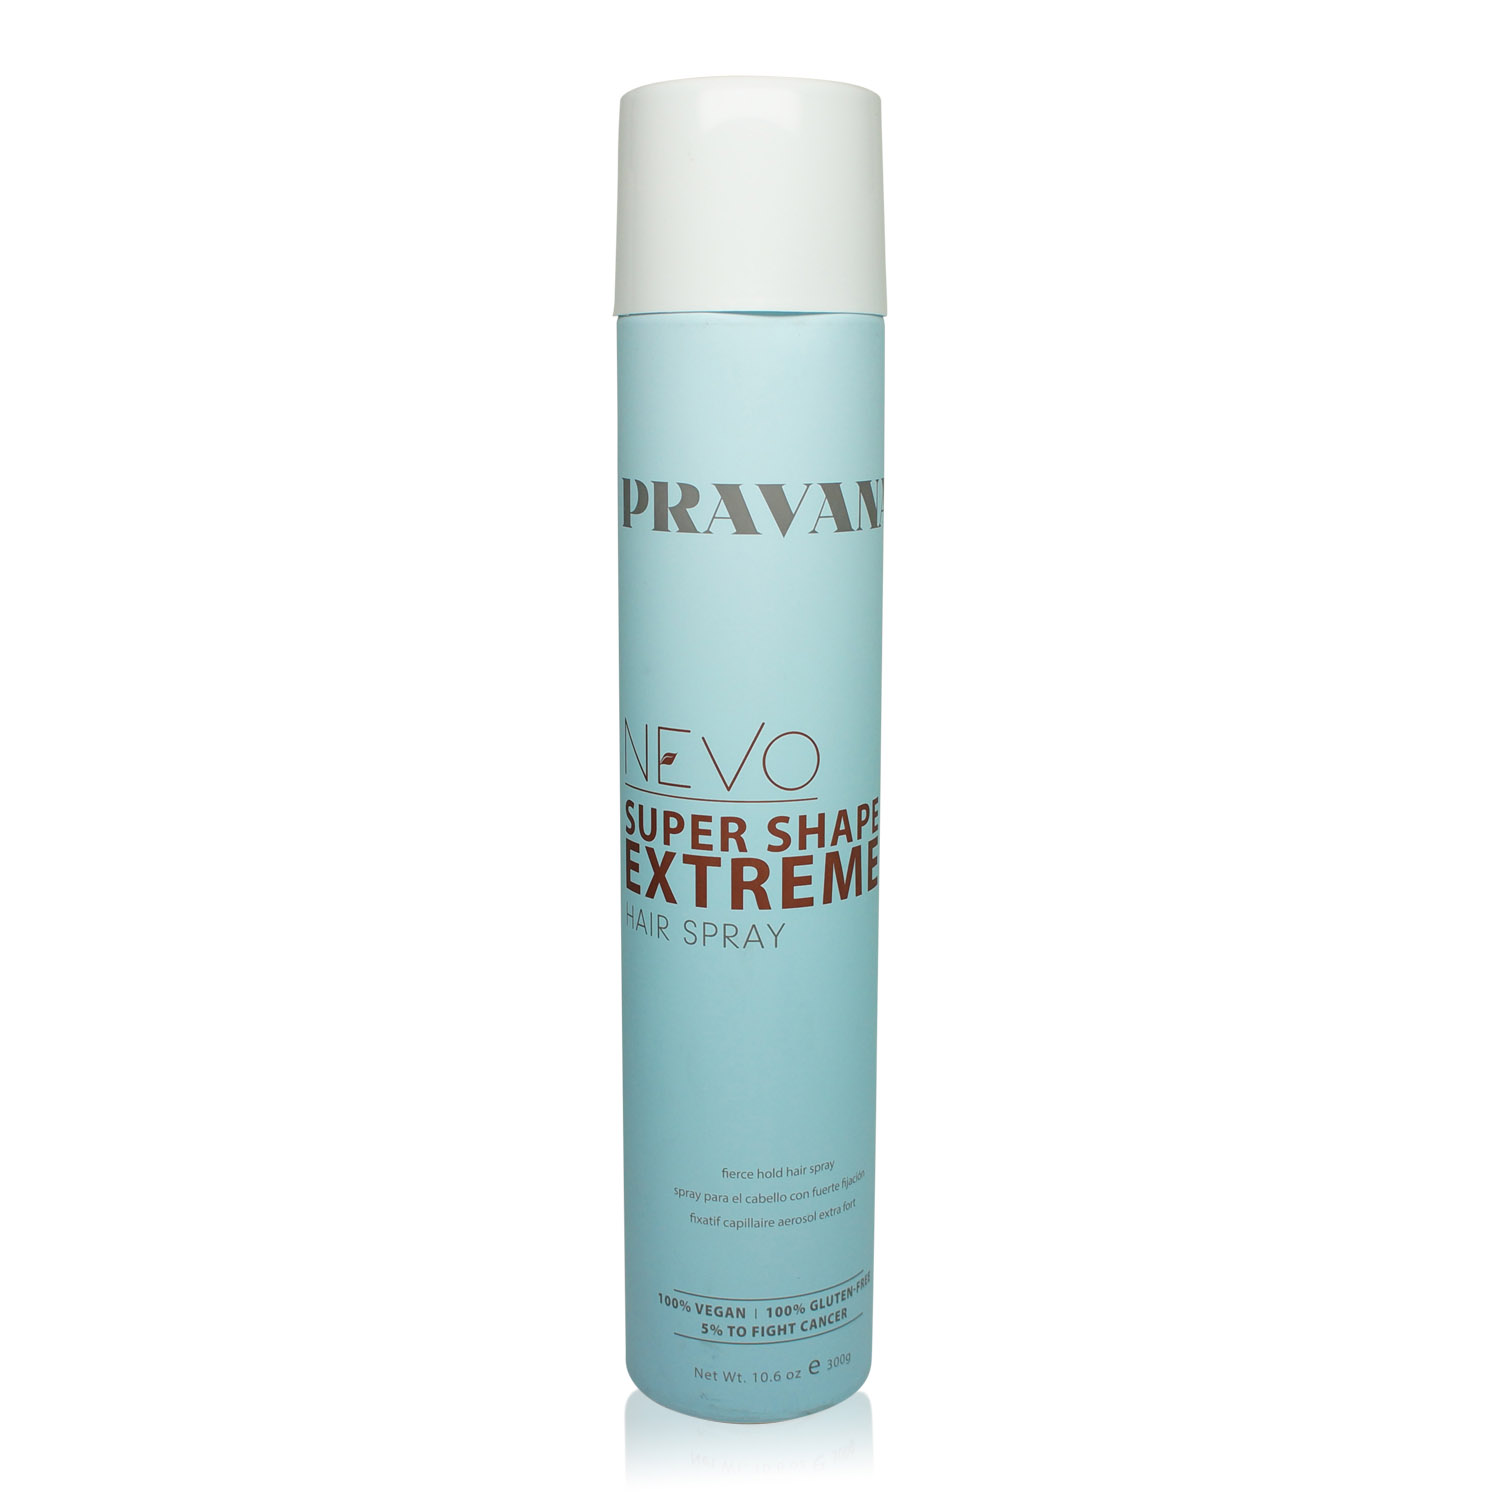 Pravana Nevo Super Shape Extreme Hair Spray 10 6oz